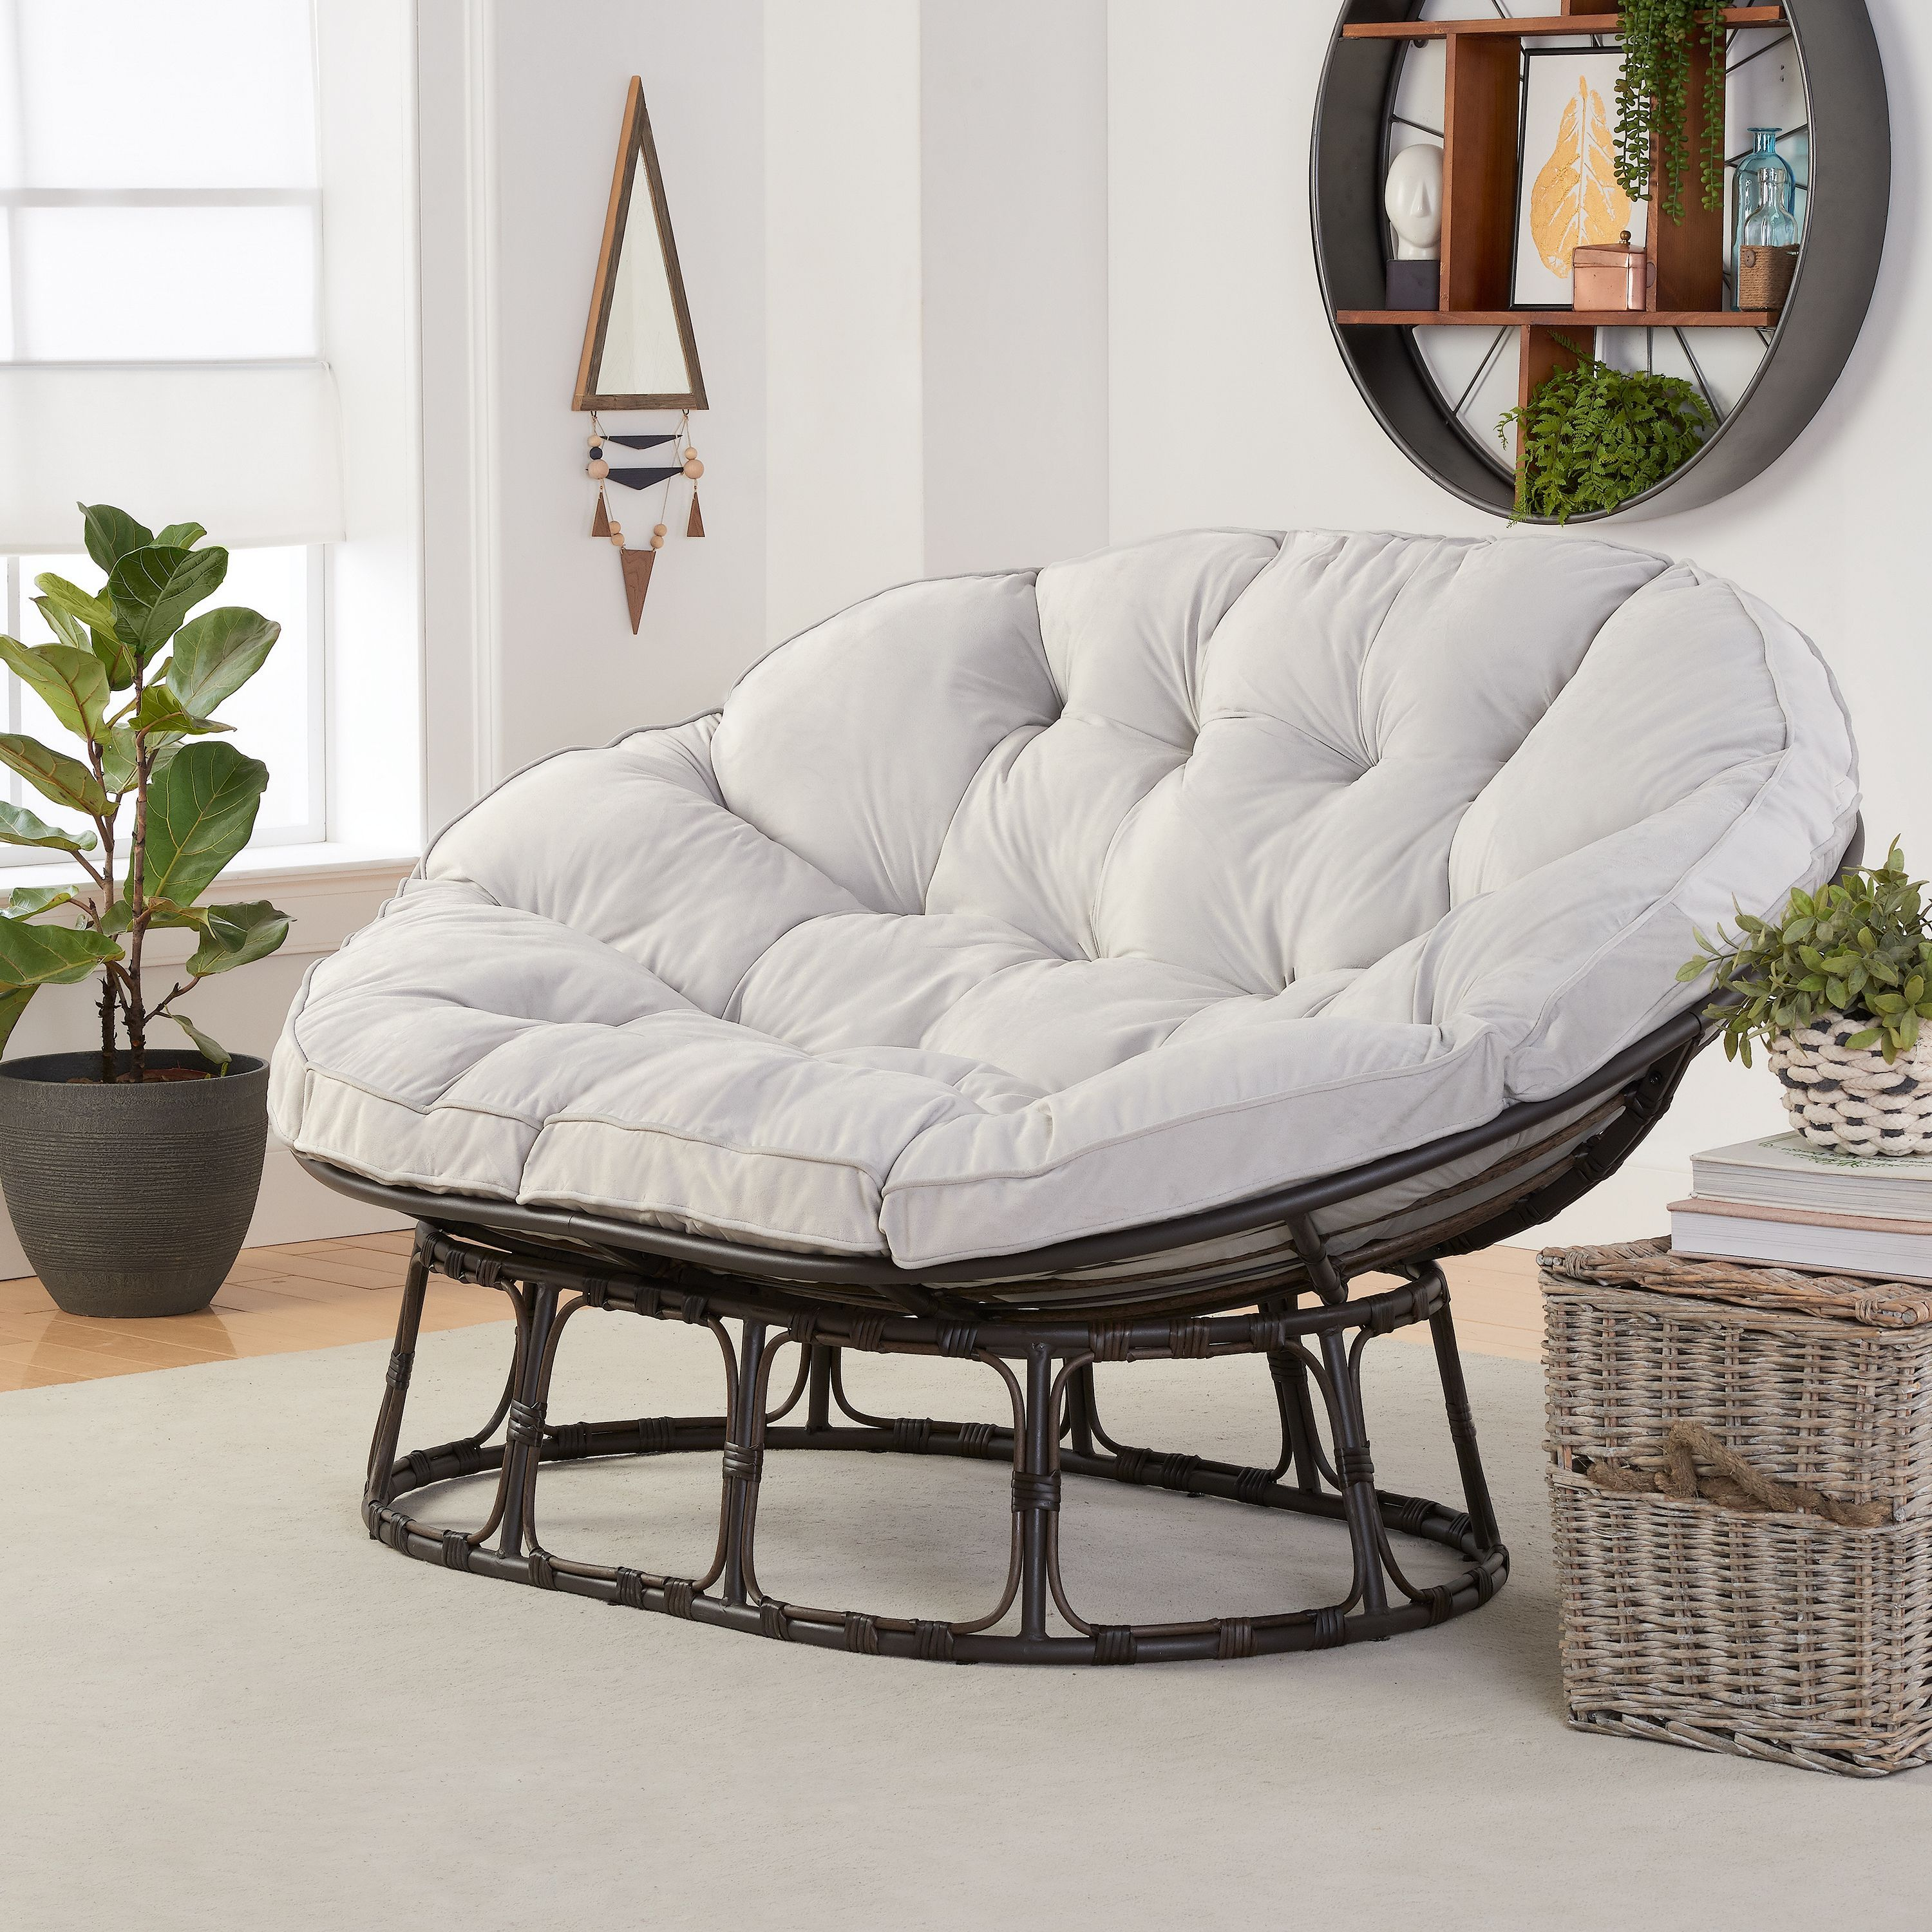 2ac682bfd883f3ca78666cd06883fc41 - Better Homes And Gardens Tufted Wicker Settee Cushion